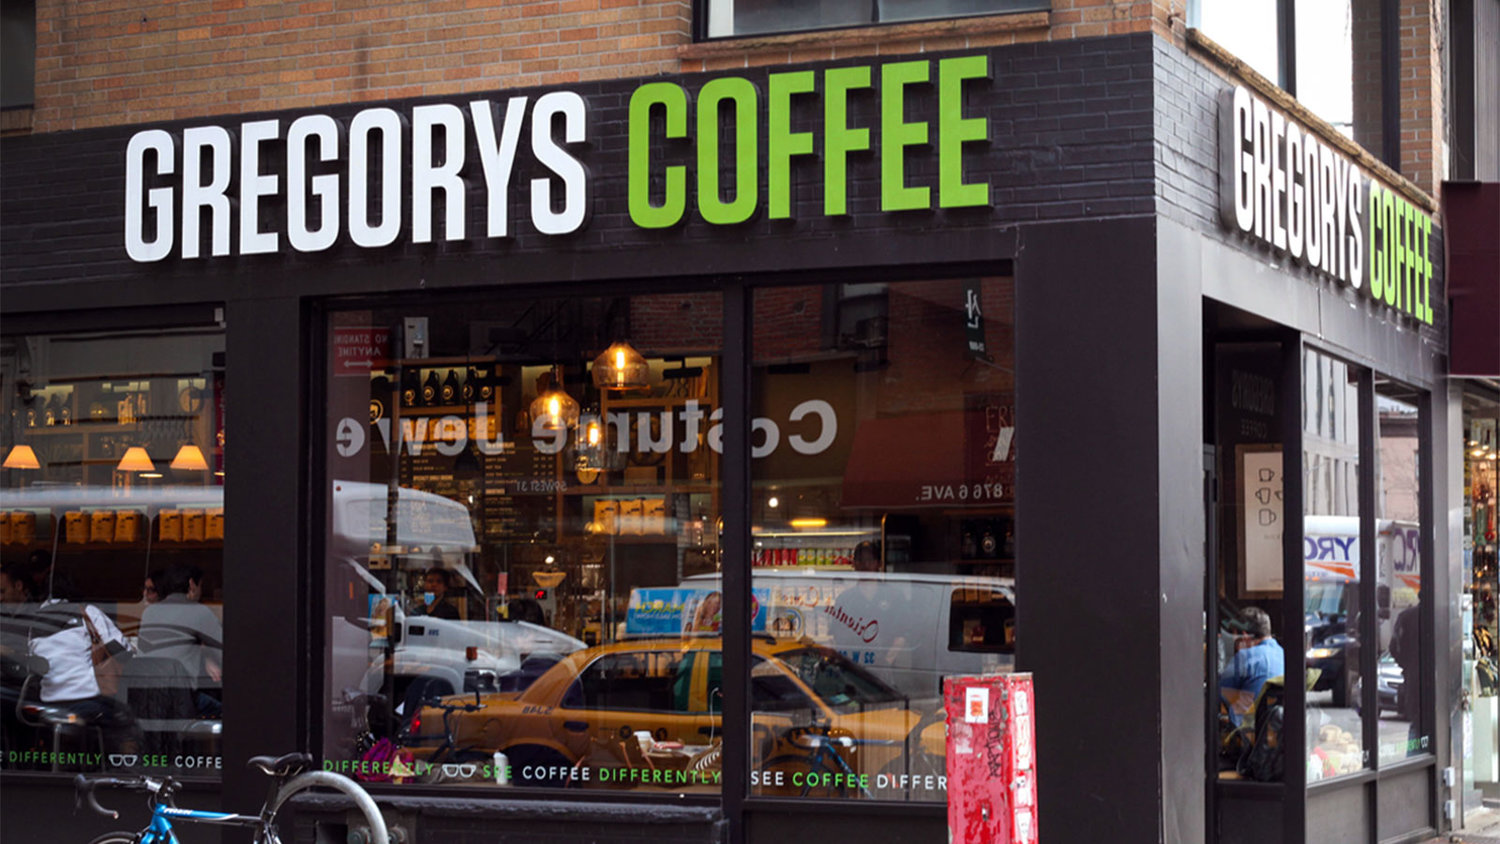 Exterior of Gregorys Coffee shop